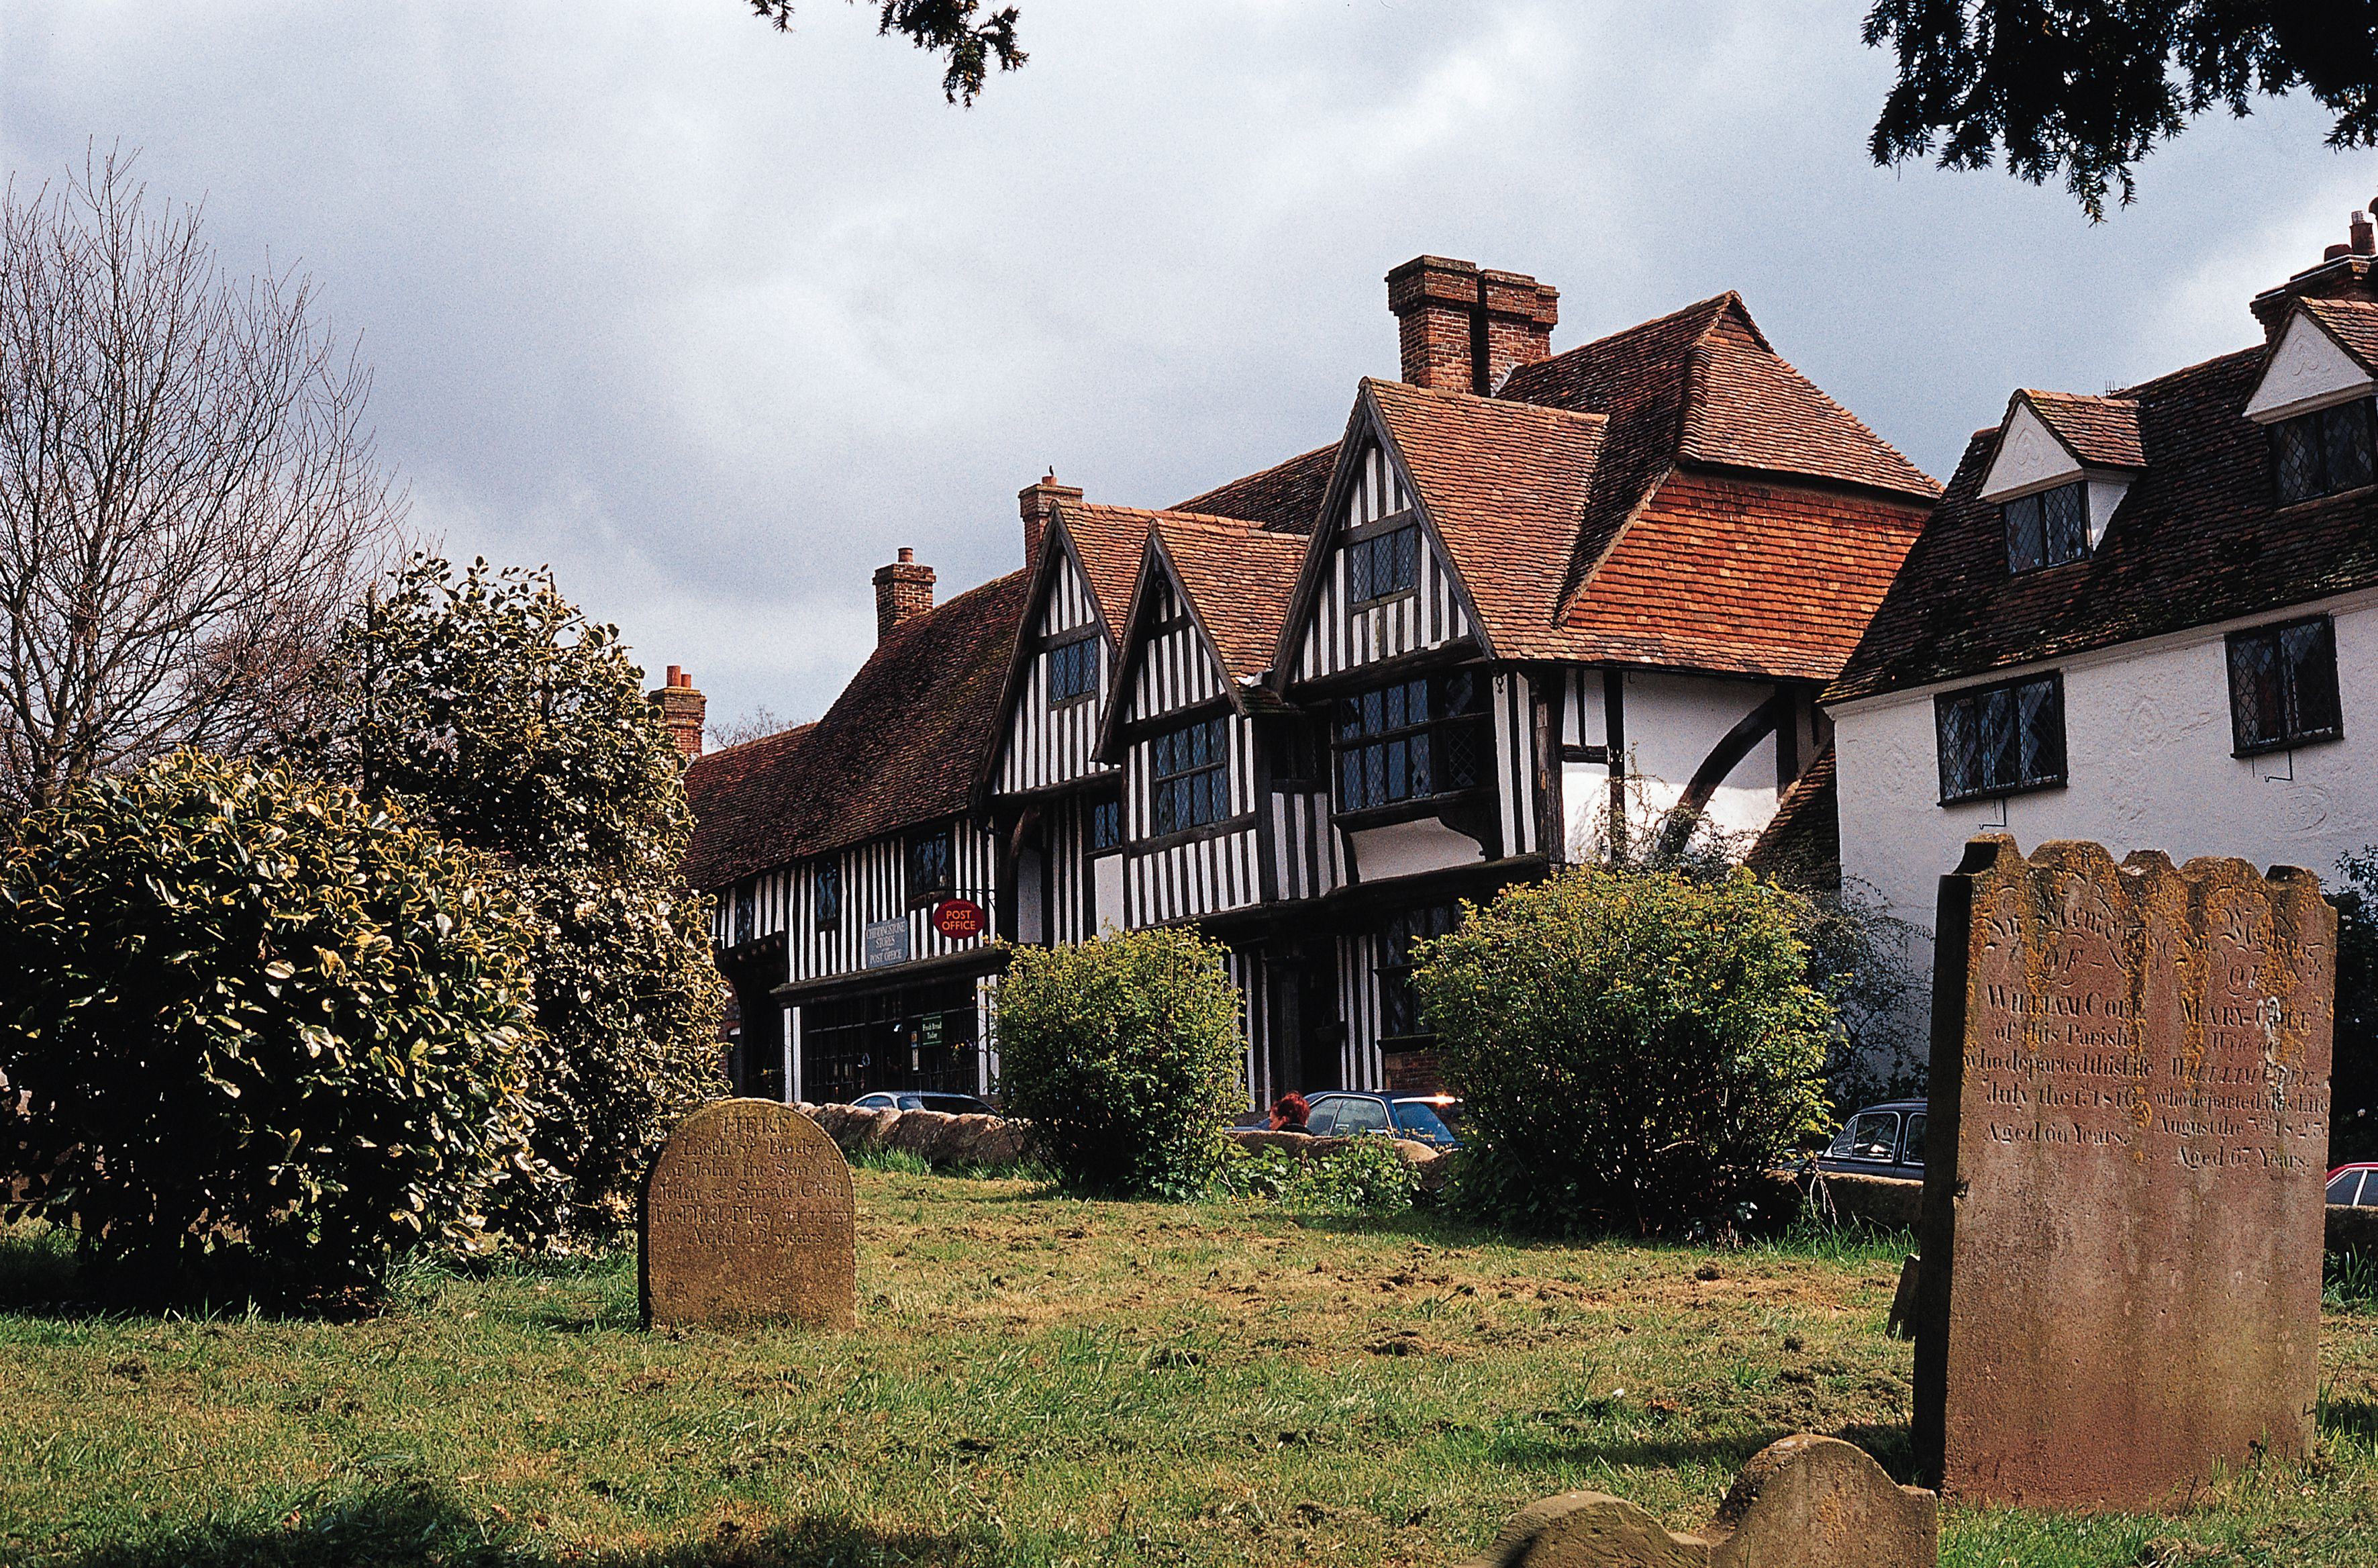 Half-timbered facade of the post office at Chiddingstone in Kent, England.